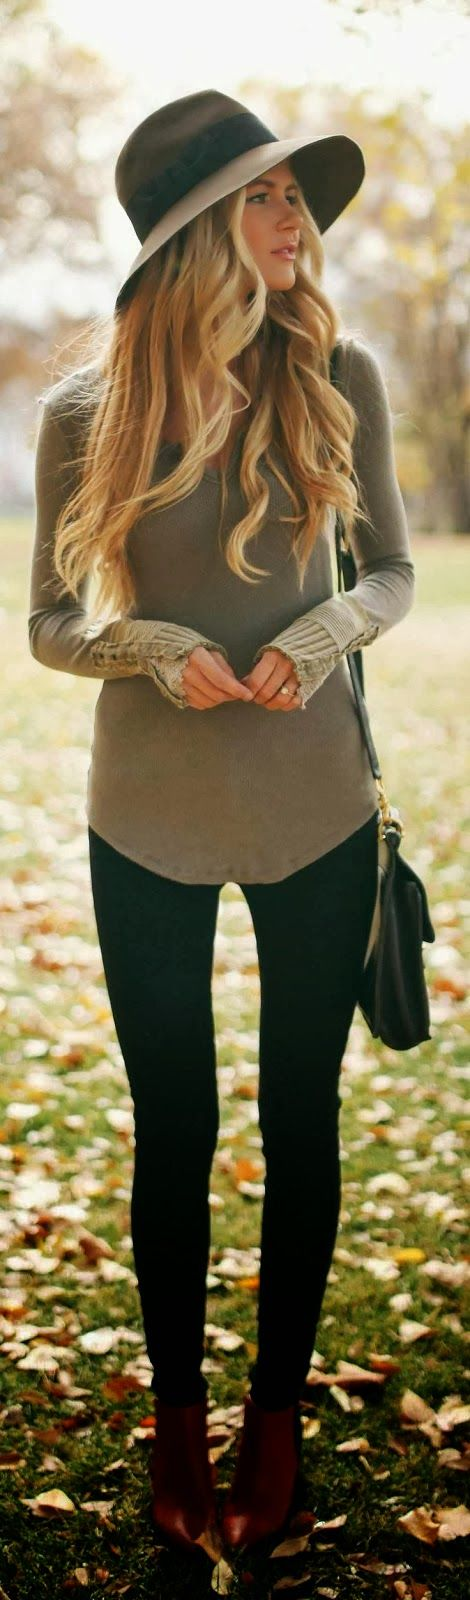 Adorable Outfit - Amazing Sweater with Black Leggings and Suitable Hat, Boots and Long Bag